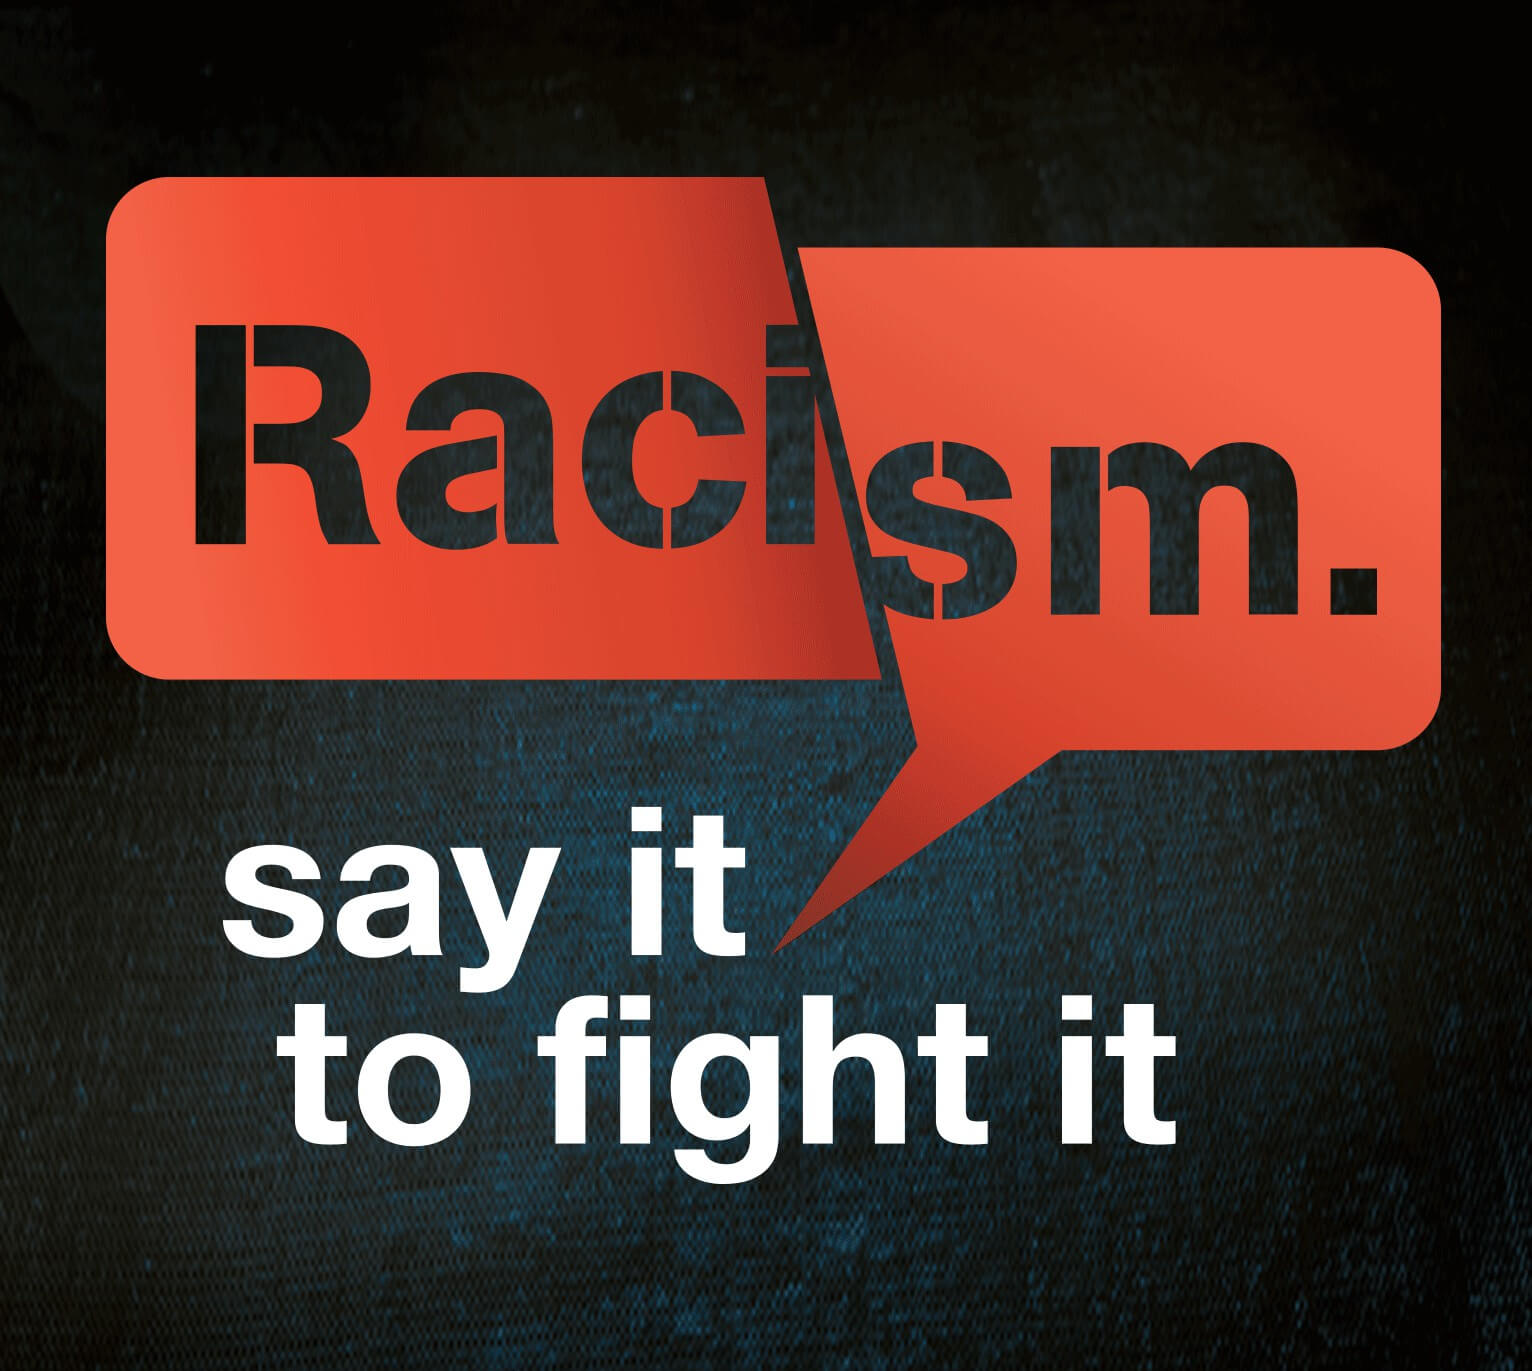 Discrimination Quotes Adorable International Day For The Elimination Of Racial Discrimination Quotes